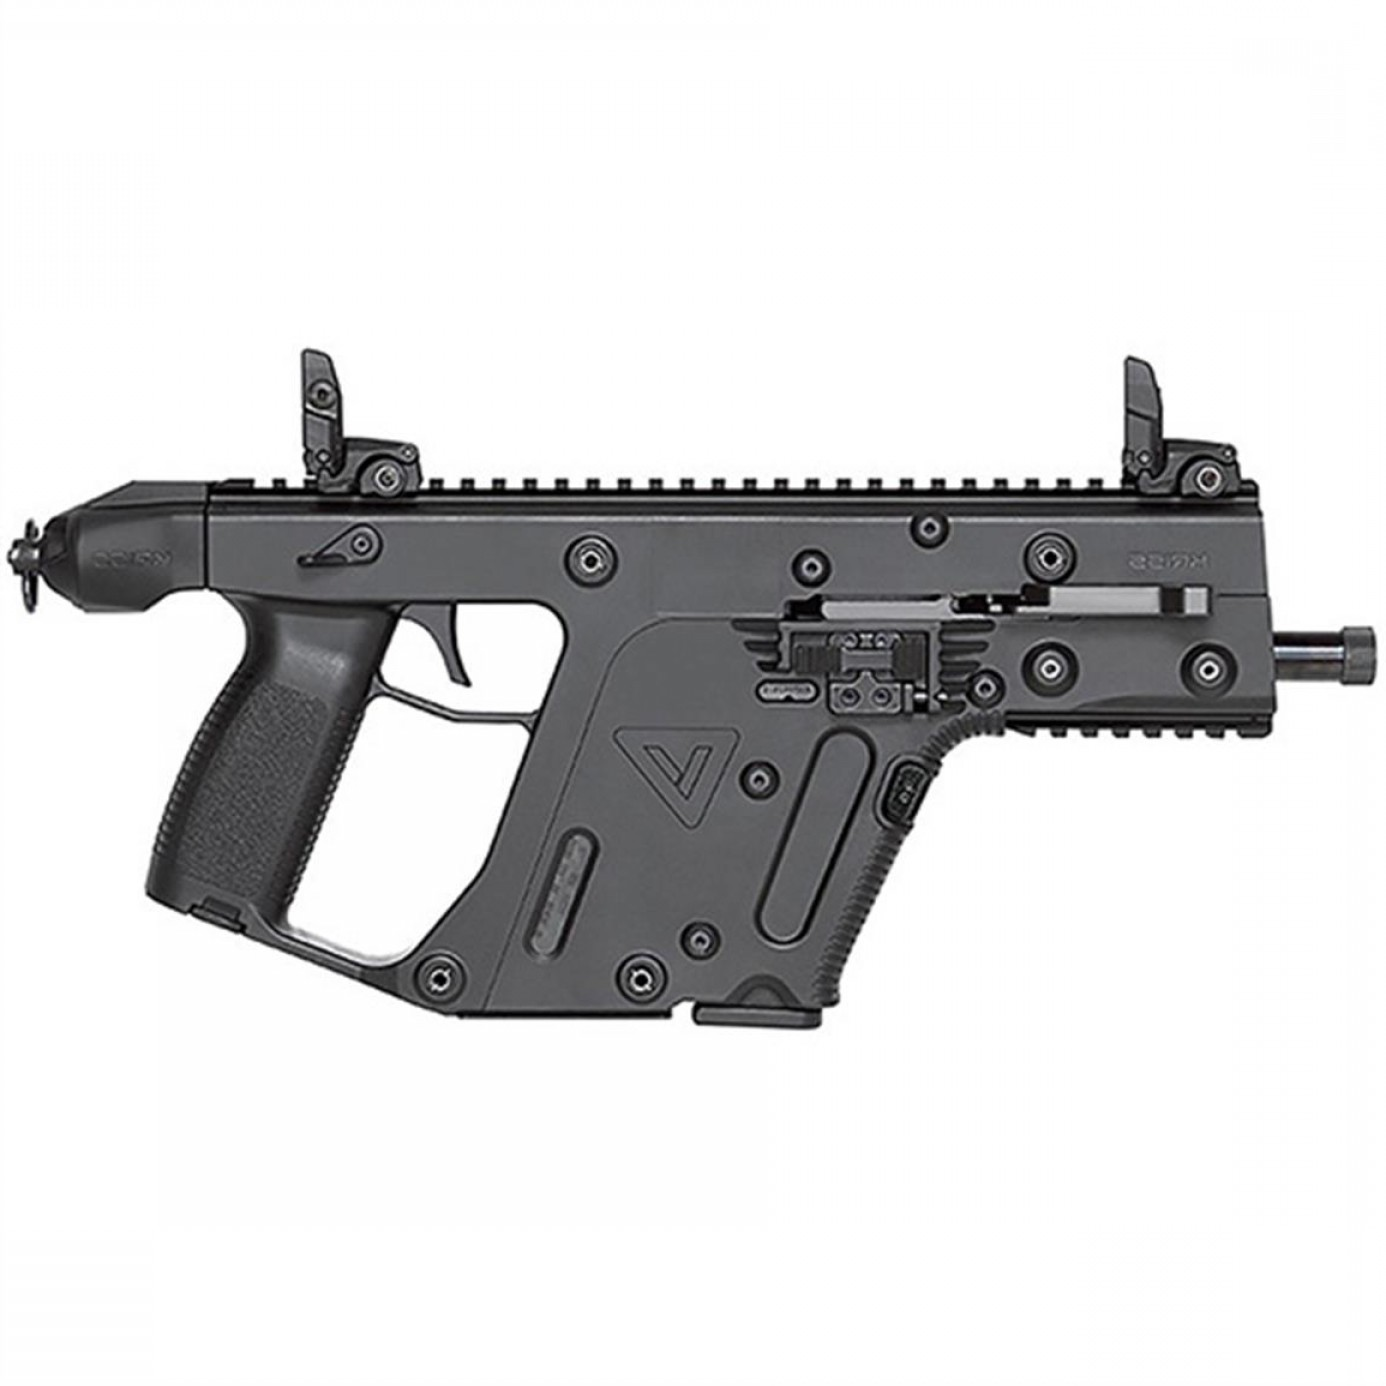 Kriss Vector AR-15 Stock Adapter: Kriss Vector Gen Ii Sdp Pistol Semi Automatic Mm Barrel Rounds